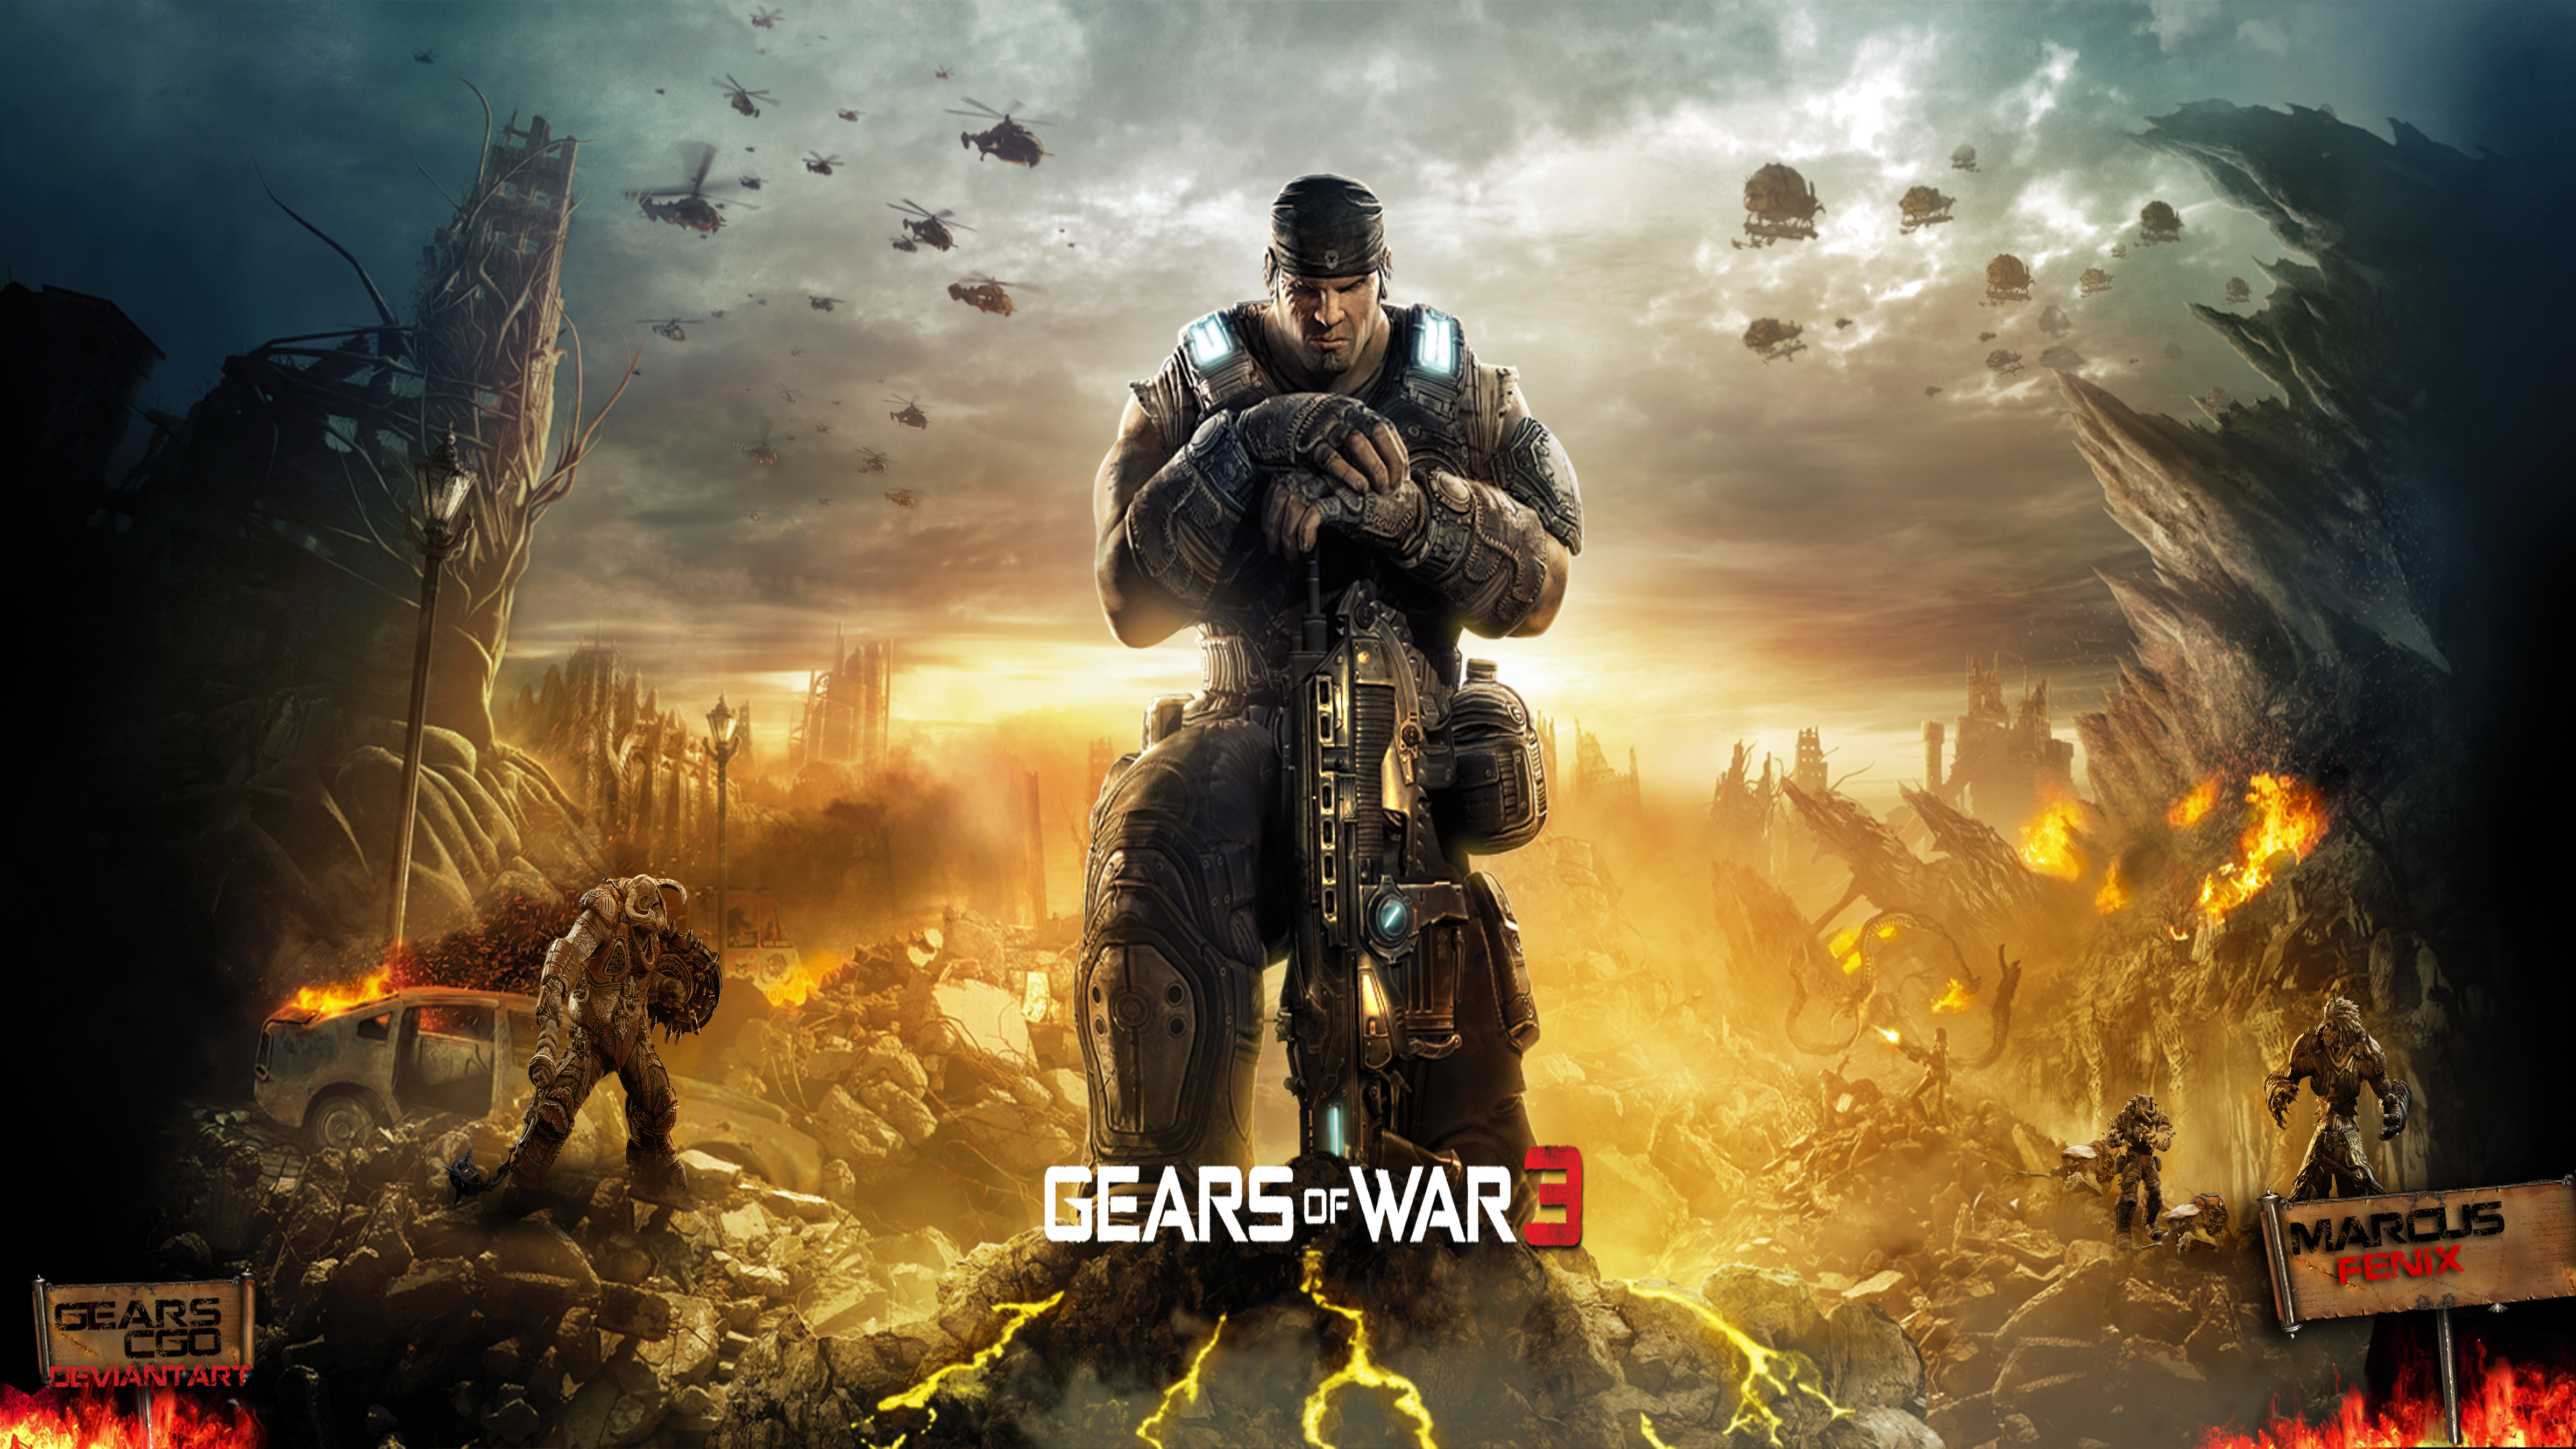 Gears Of War 3 Wallpapers: Wallpaper By GearsCgo On DeviantArt